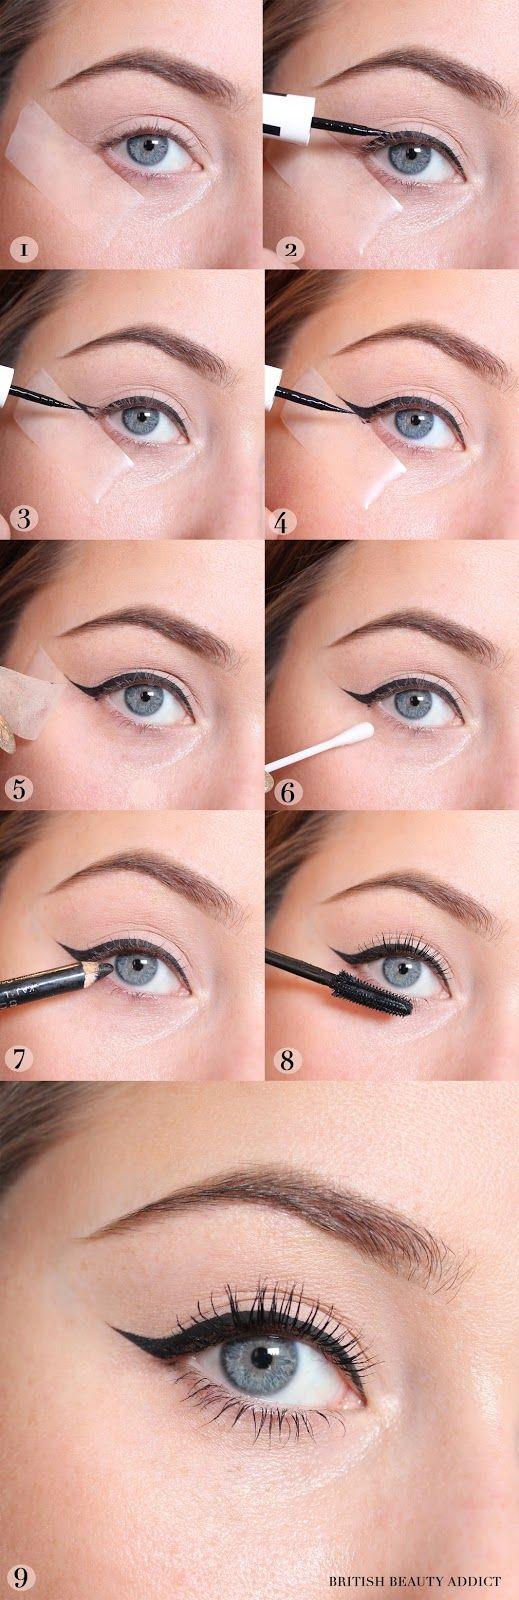 The sticky trick for perfect winged eyeliner eyeliner makeup and eye the sticky trick for perfect winged eyeliner tips for eyelinereasy eyelinereyeliner tutorial baditri Image collections